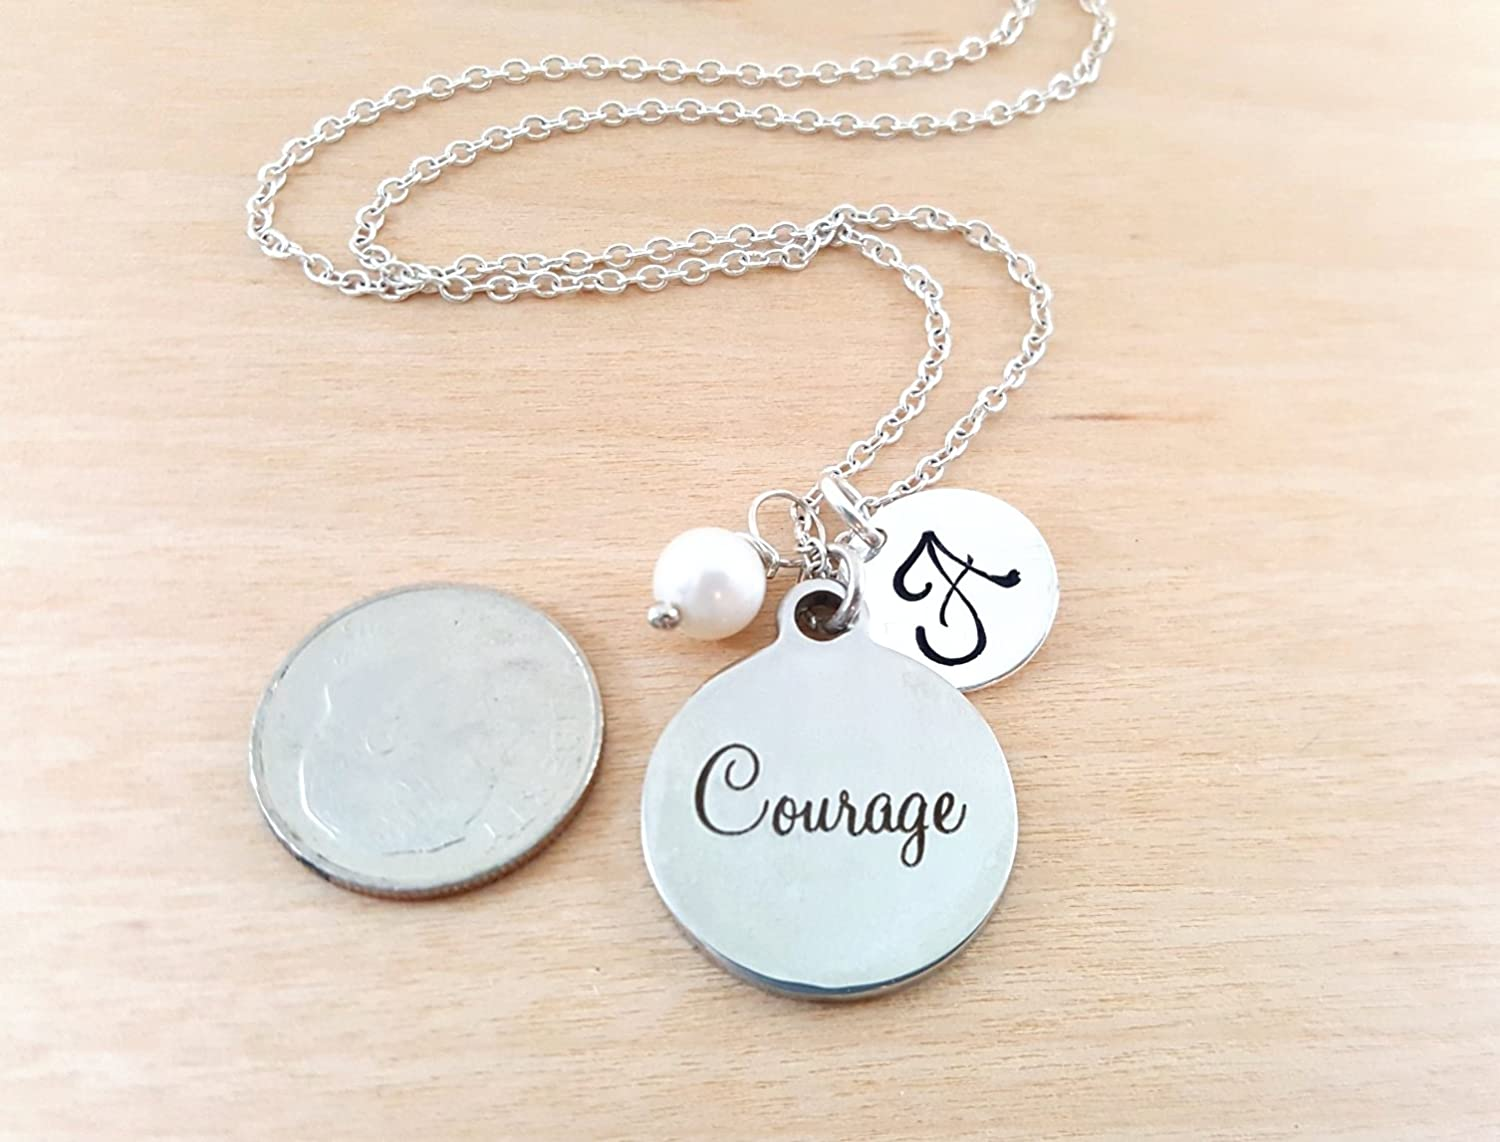 jewelry courage amazon b com dp necklace u sterling silver growth charm gemstone